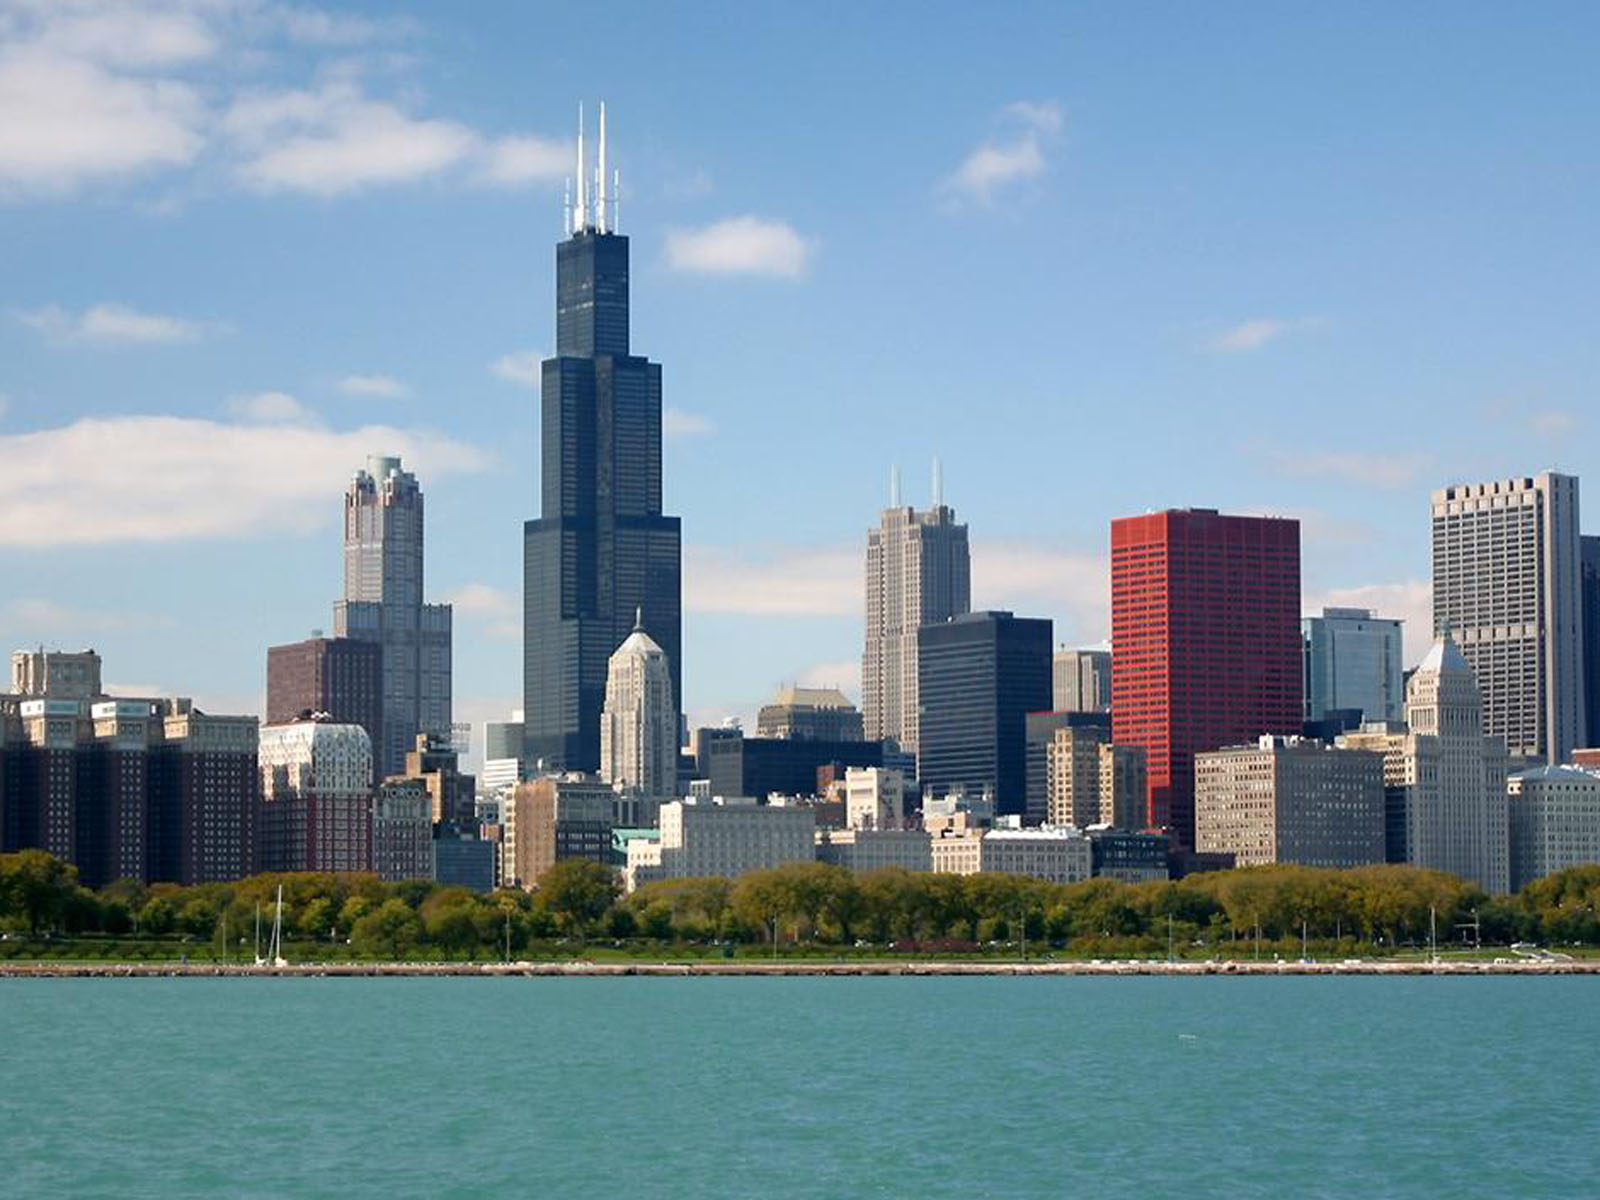 chicago windy city wallpapers - photo #28